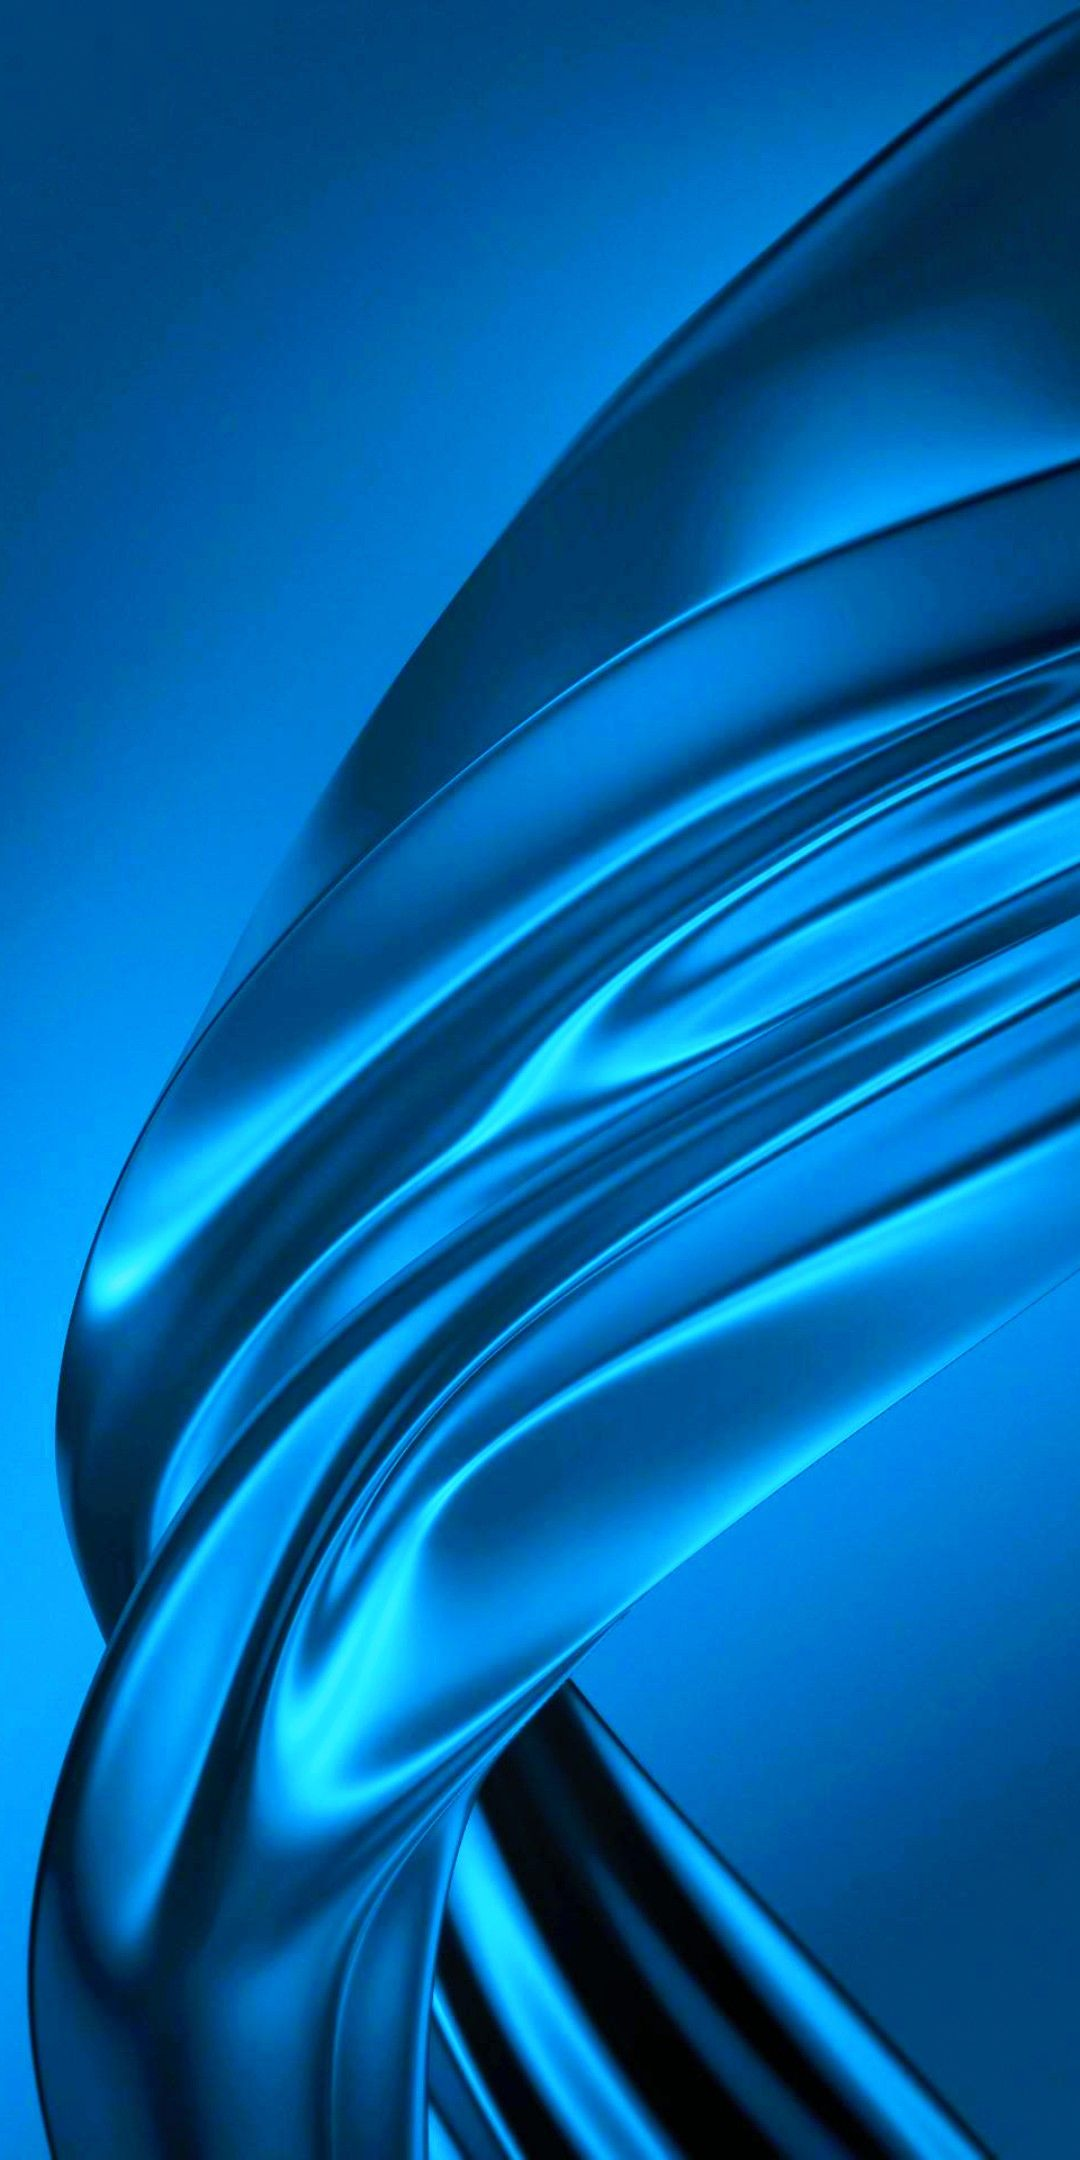 Pin by Jerry Paz on Wallpaper backgrounds Blue art, Blue